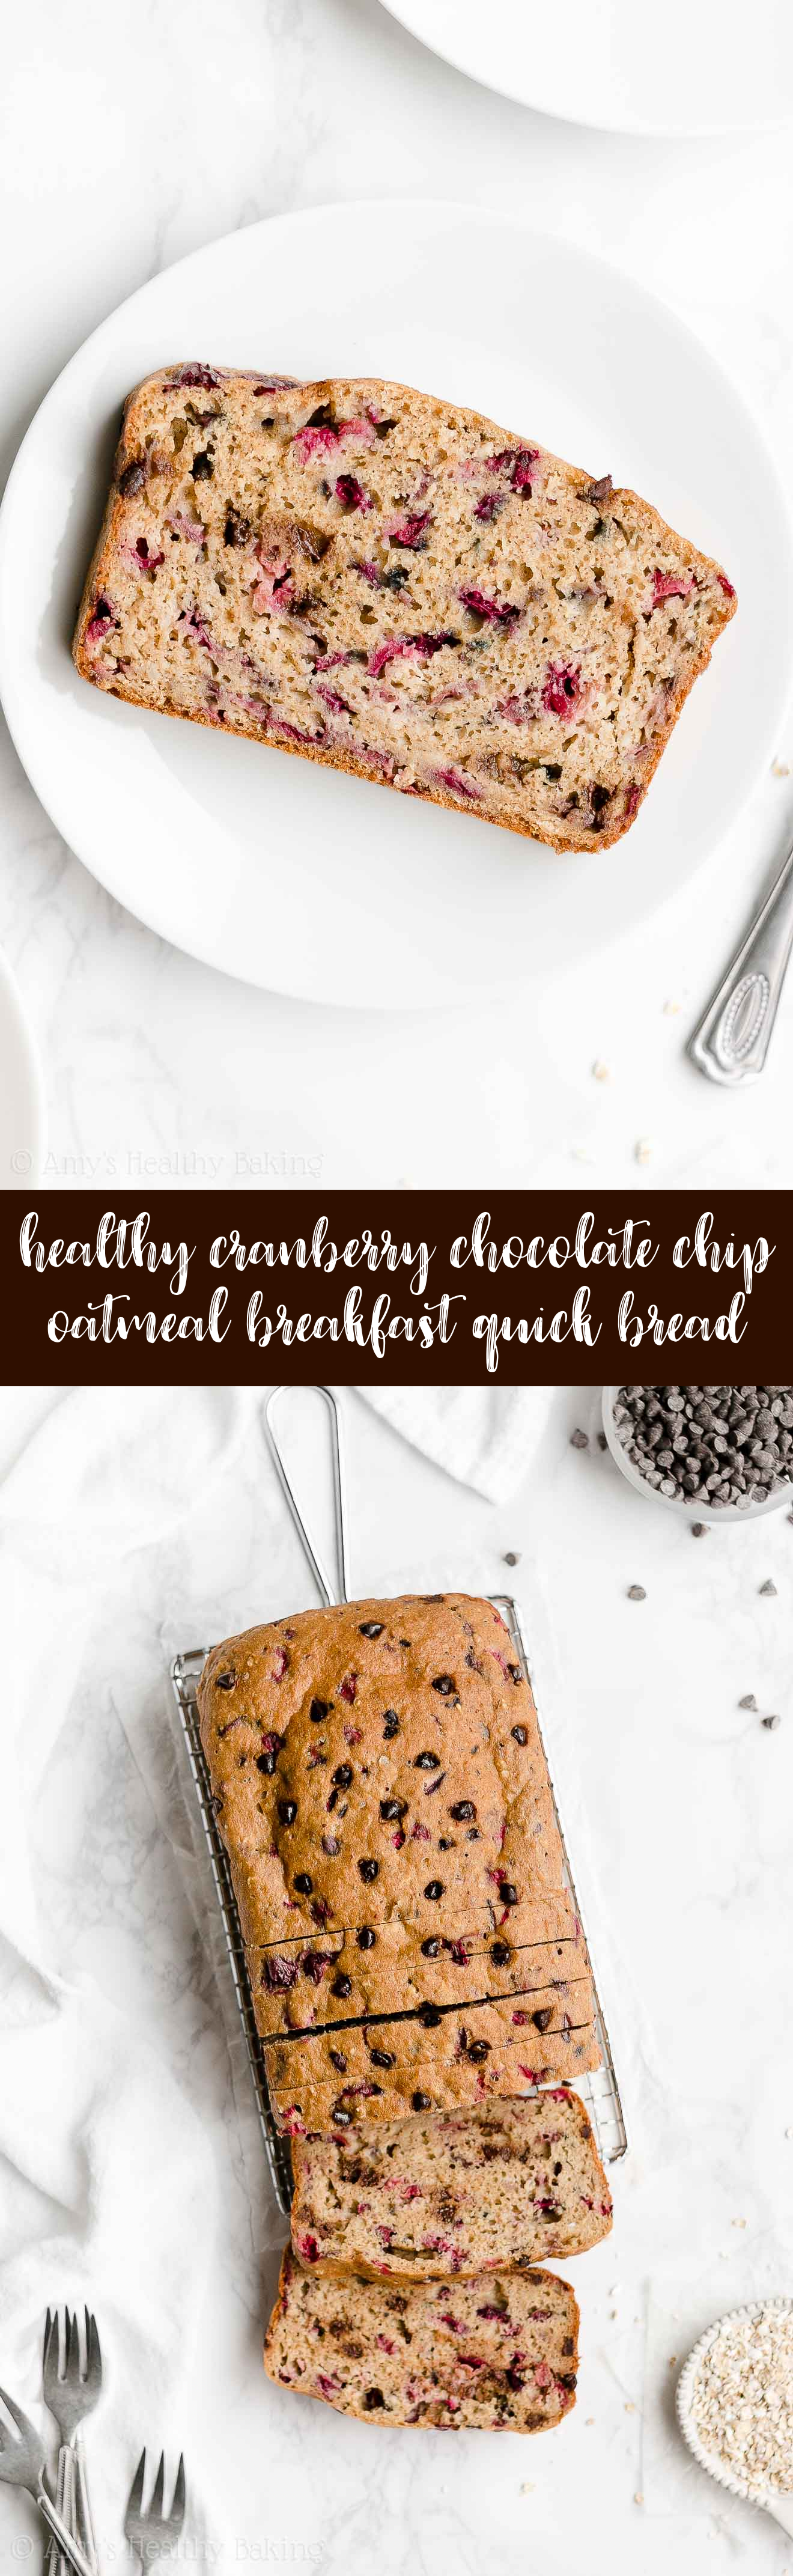 Best Easy Healthy Cranberry Chocolate Chip Oatmeal Breakfast Quick Bread